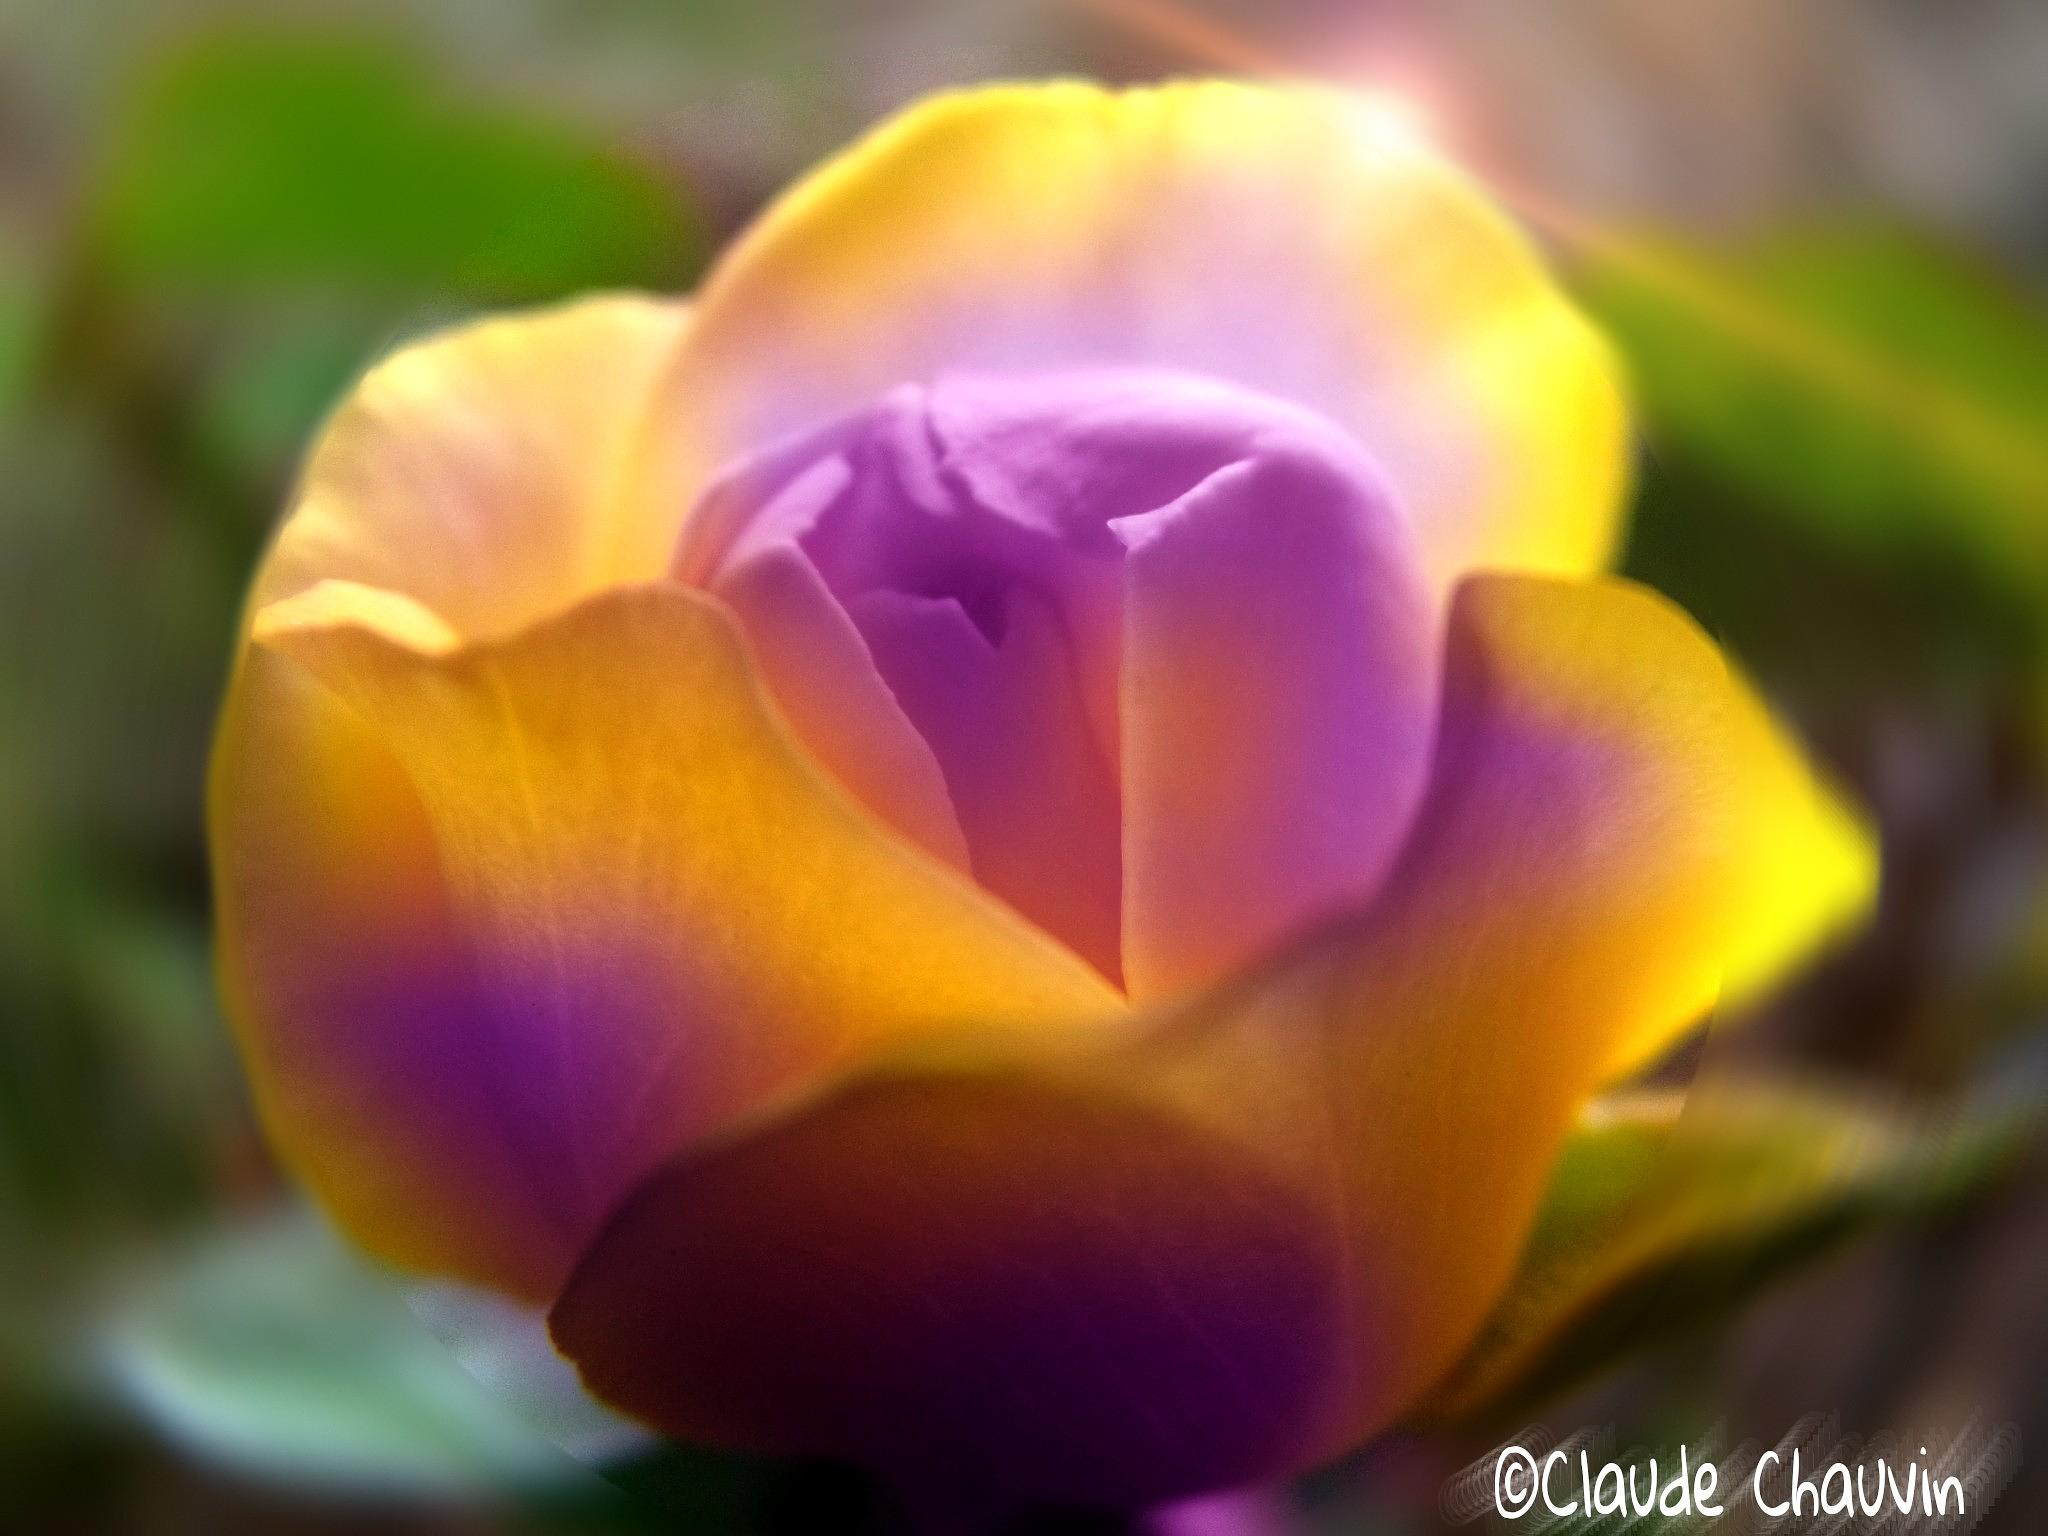 Sweetie Rose  by claudechauvin67